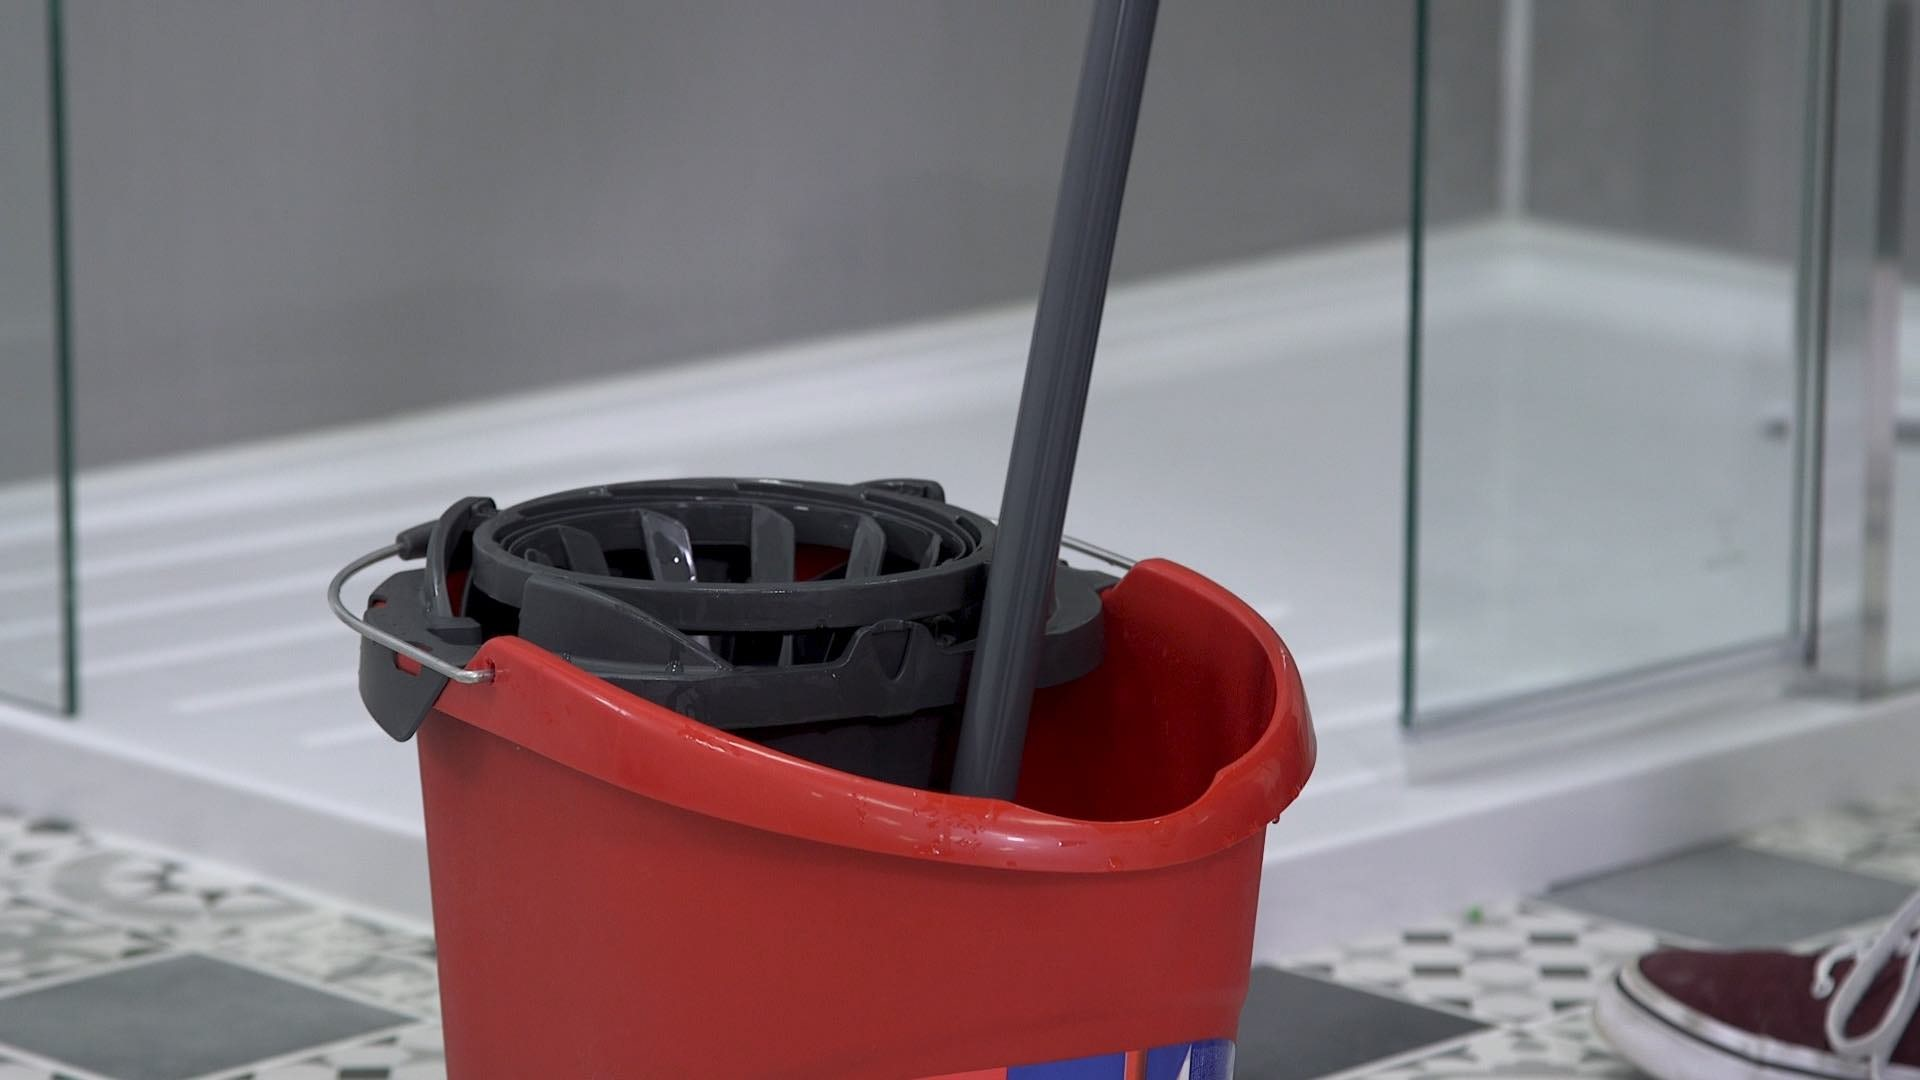 Rinsing your mop